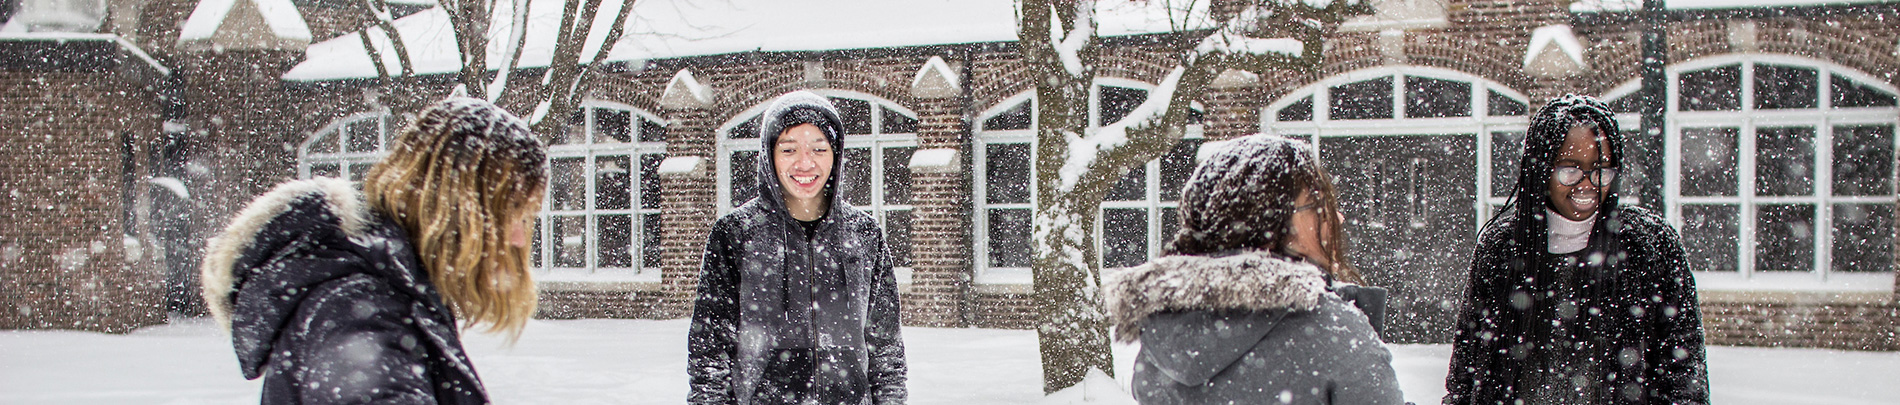 International students play in the snow.